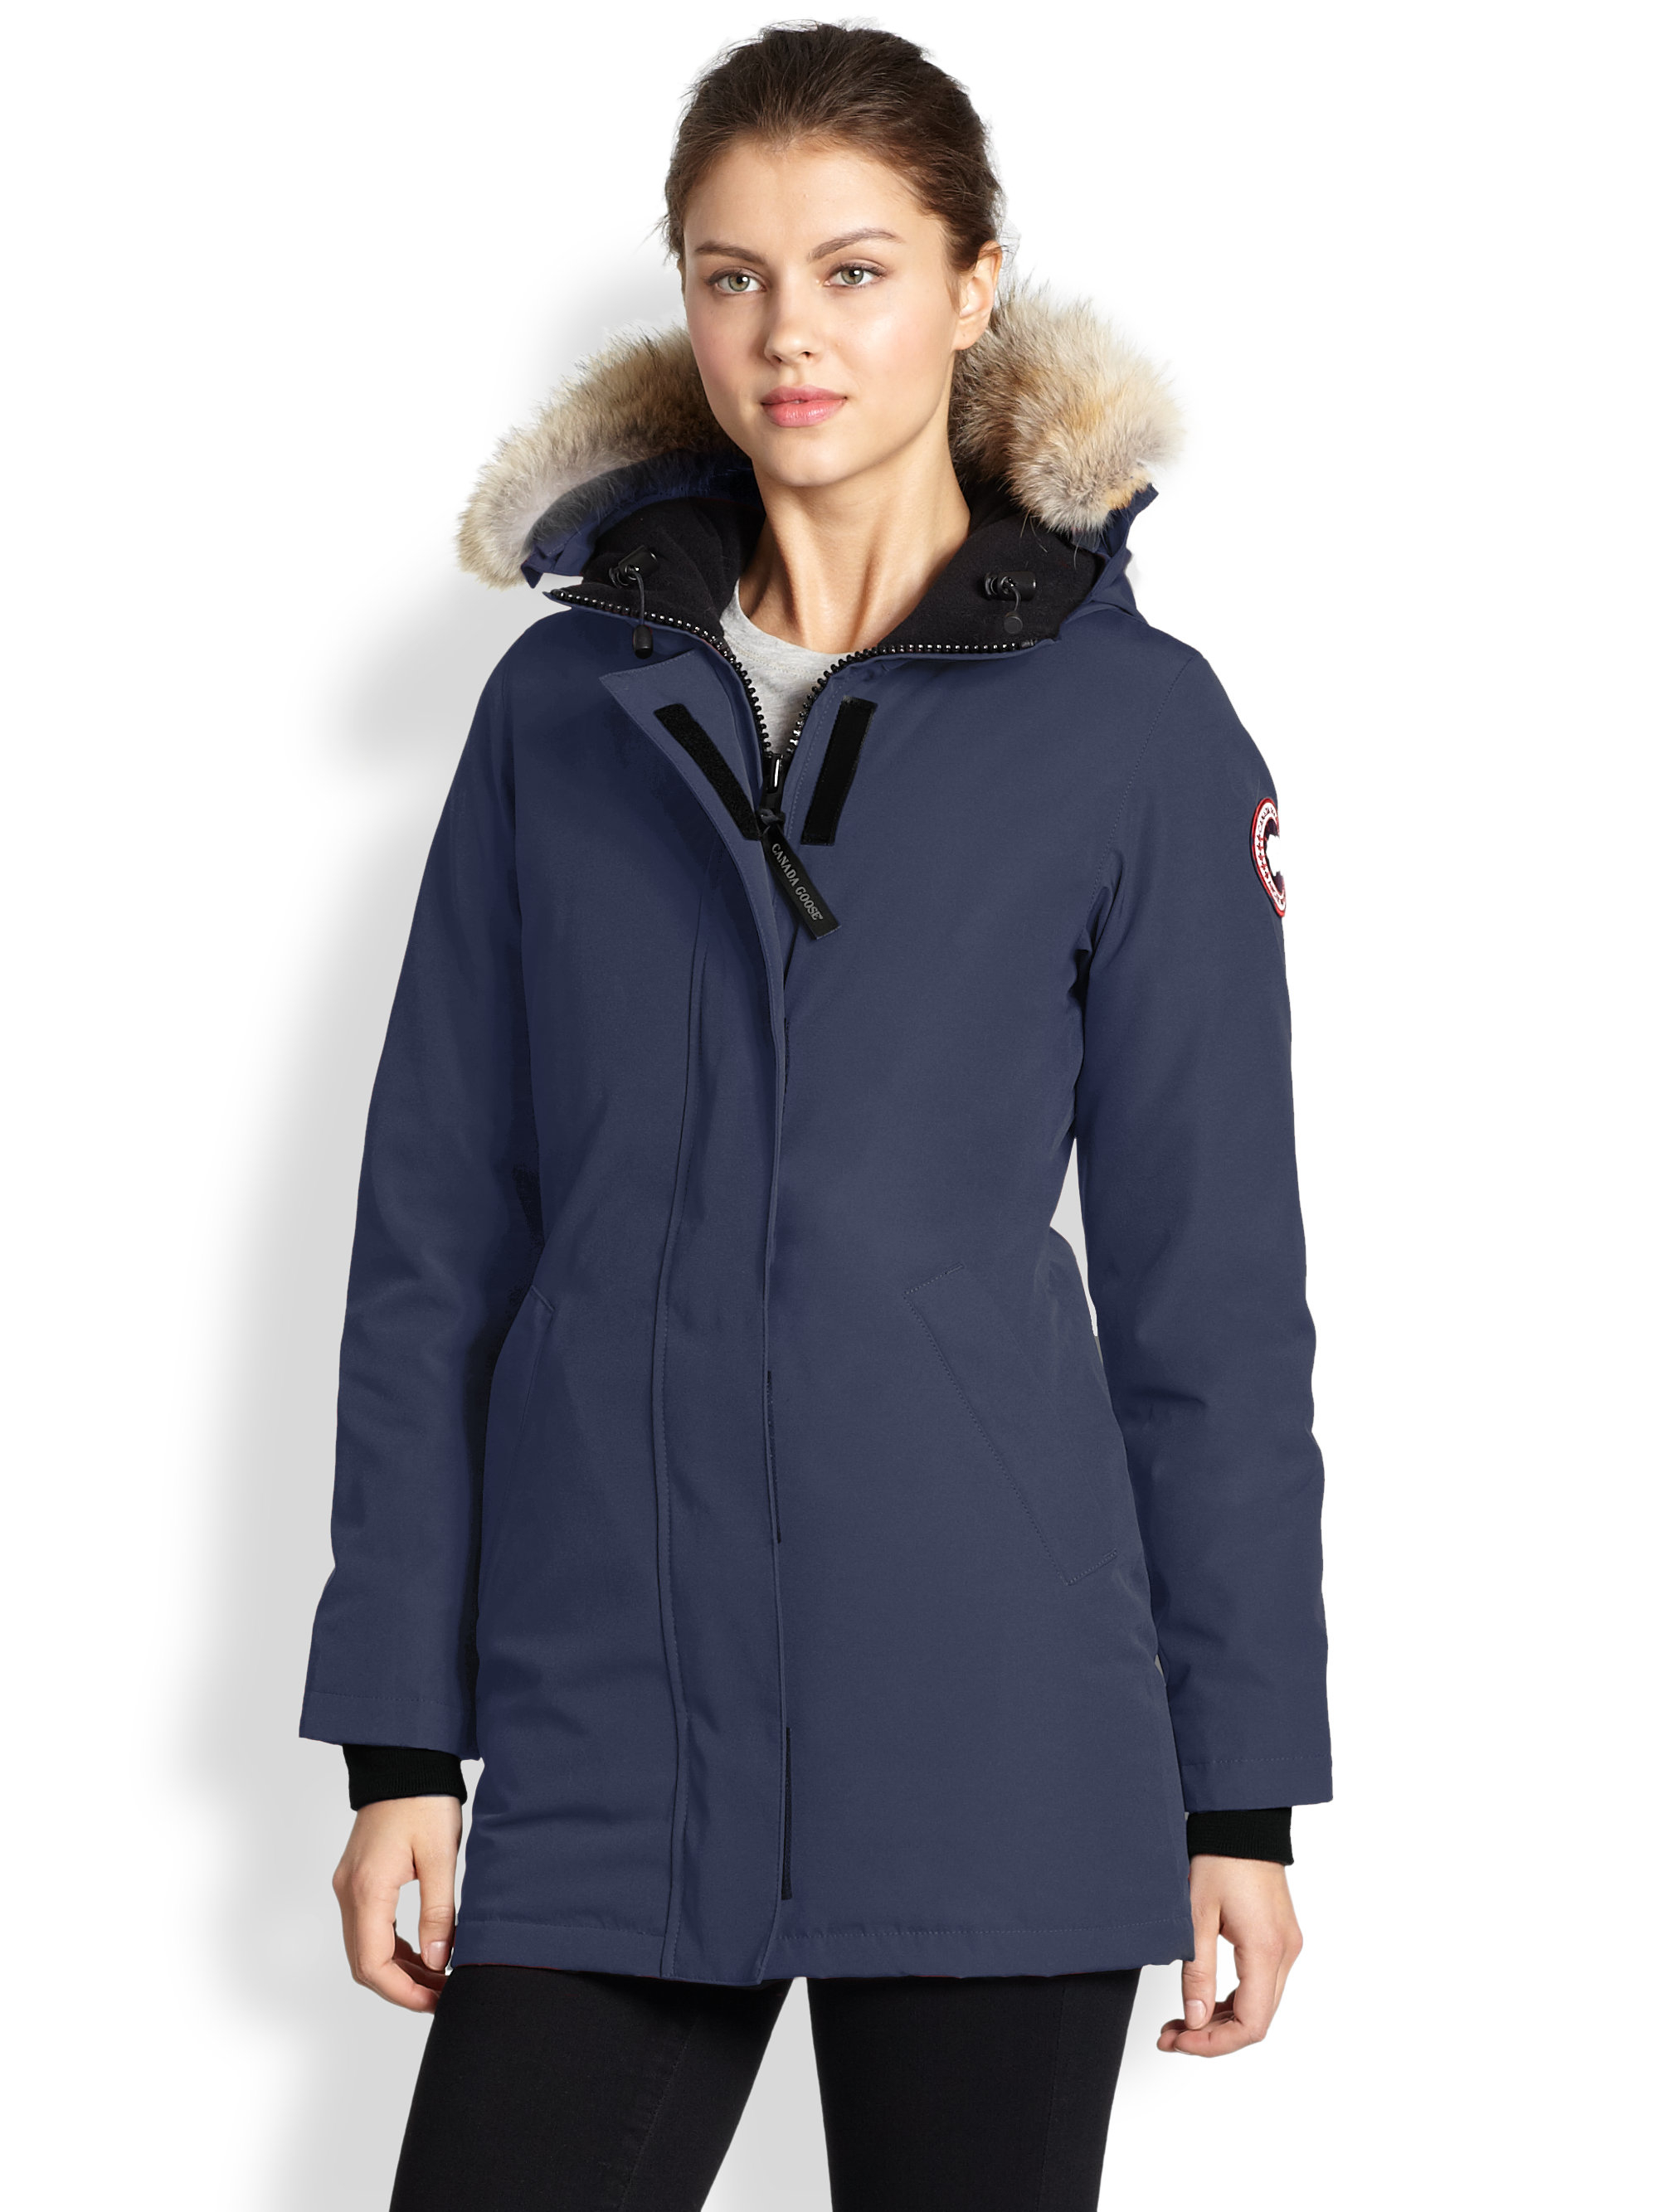 Canada Goose kensington parka replica shop - Canada goose Fur-trimmed Down-filled Victoria Parka in Blue ...